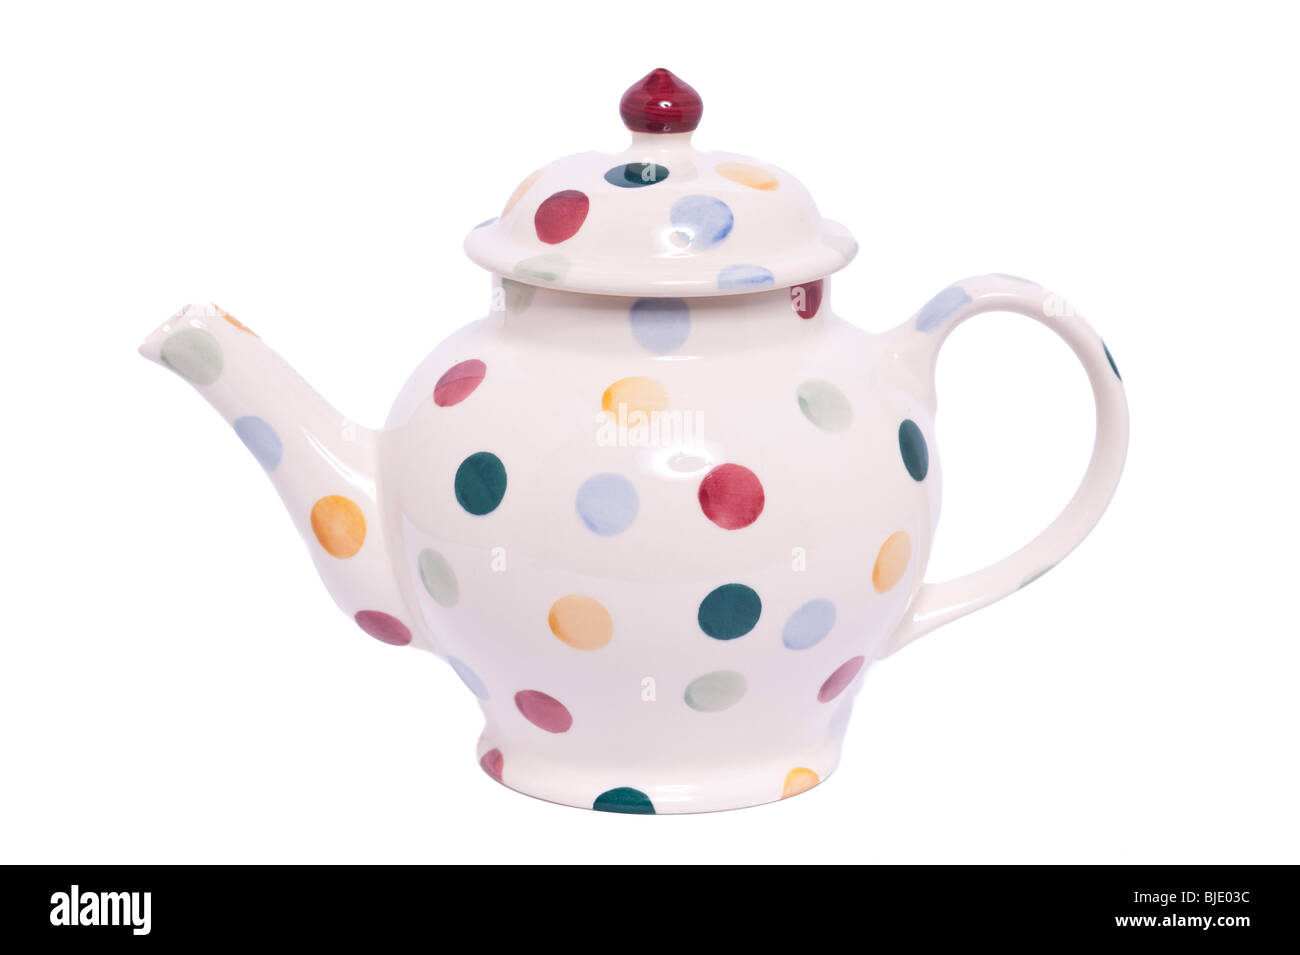 A Polka dot patterned pot by Emma Bridgewater decorated by hand on a white background - Stock Image